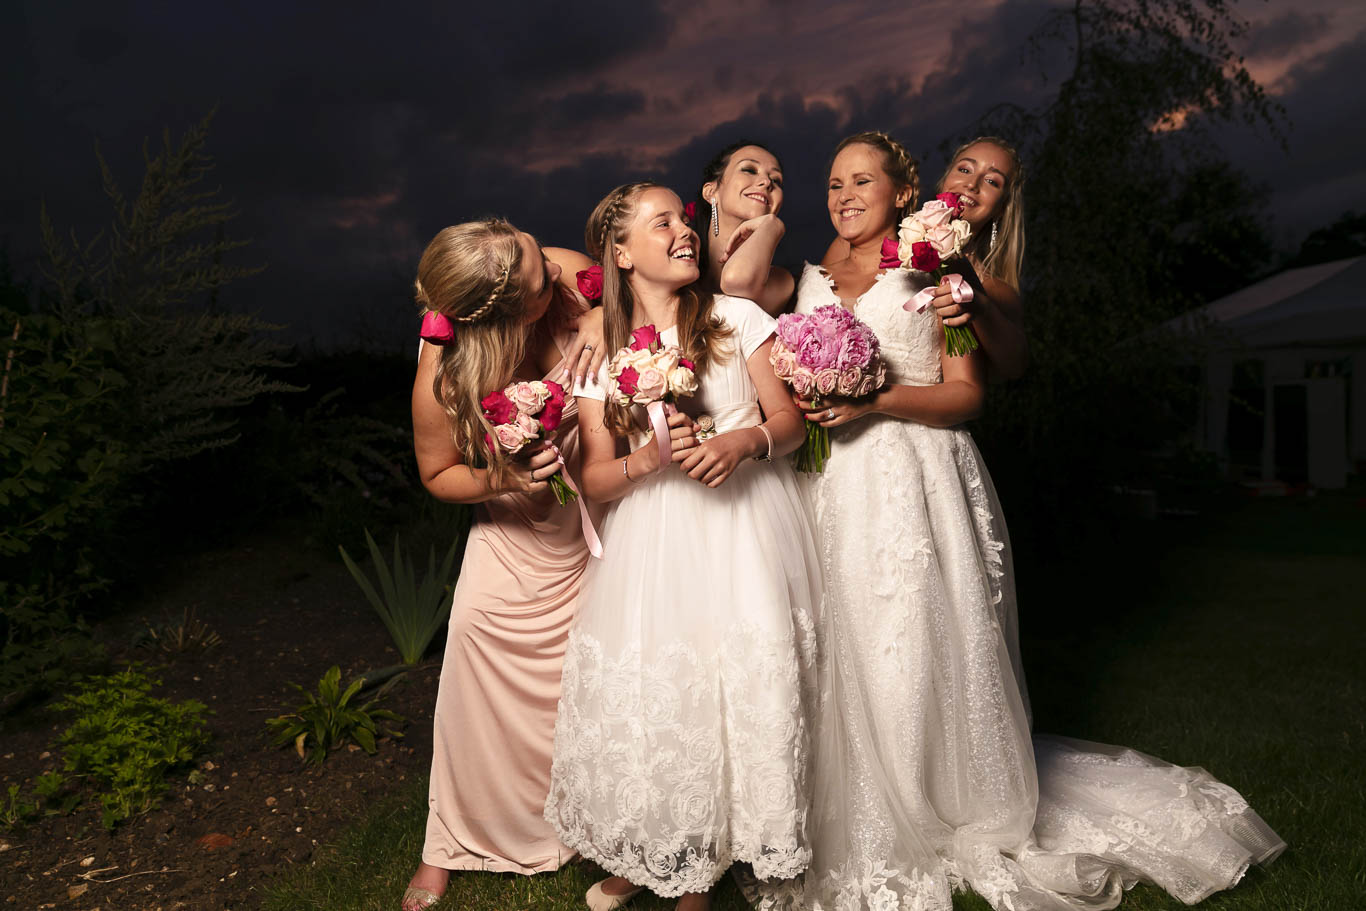 Bride and Bridesmaids at Dusk